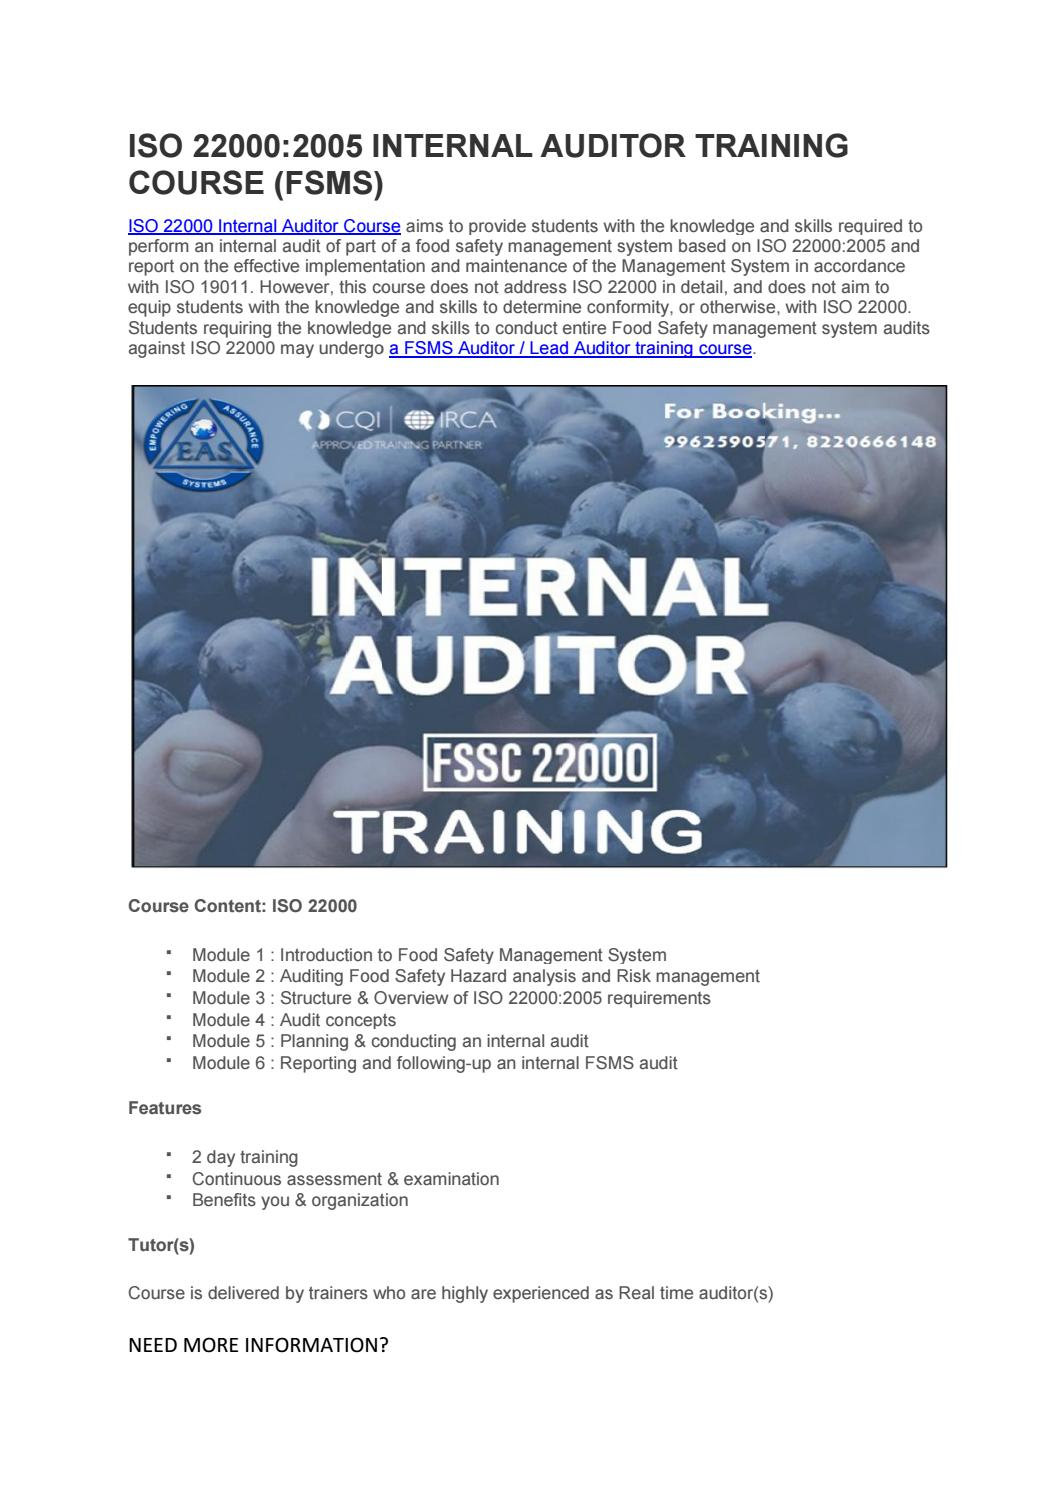 ISO 22000 Internal Auditor Food Safety Management Training